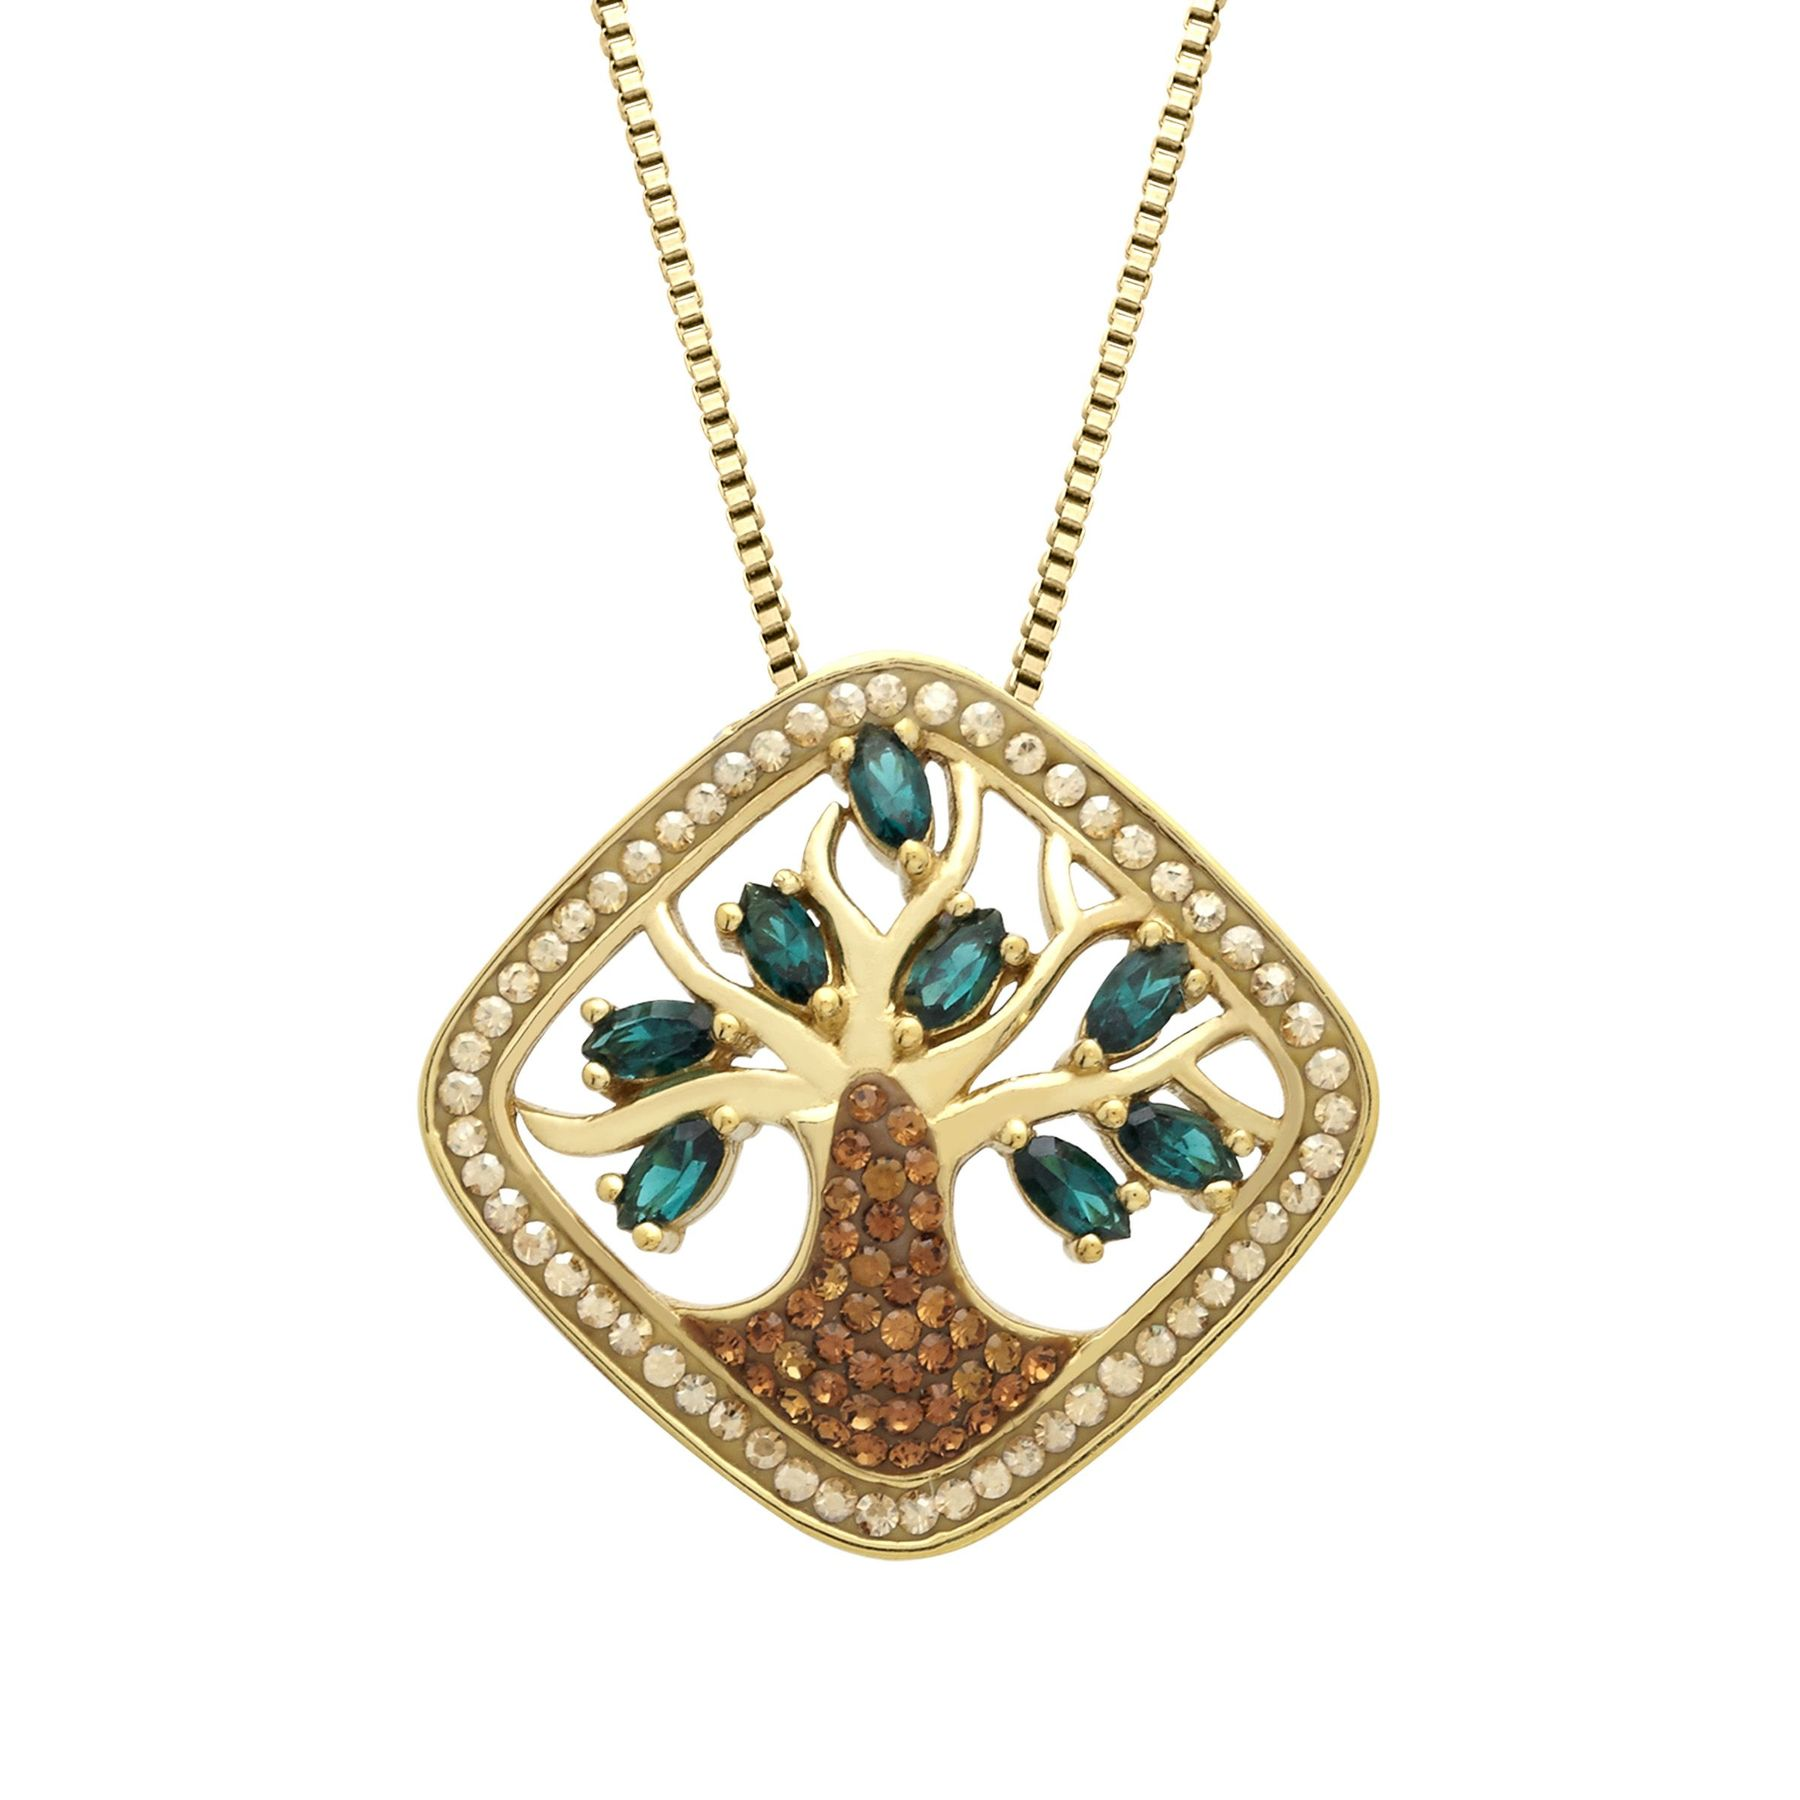 6d9173dcb316b Crystaluxe Tree of Love Pendant with Swarovski Crystals in 18K Gold-Plated  Sterling Silver